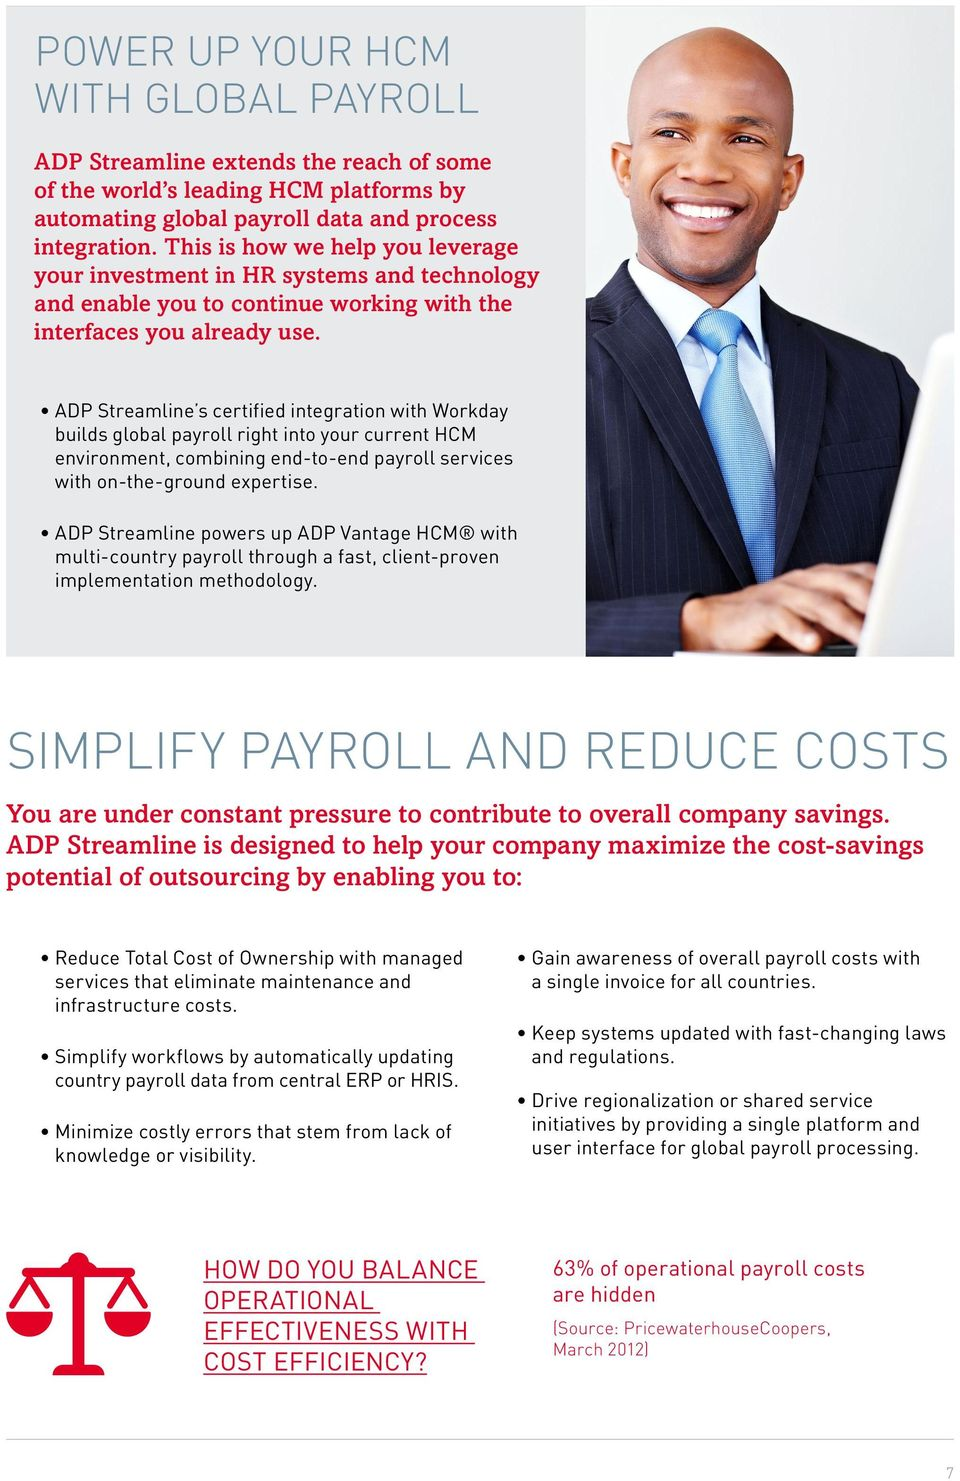 ADP Streamline s certified integration with Workday builds global payroll right into your current HCM environment, combining end-to-end payroll services with on-the-ground expertise.